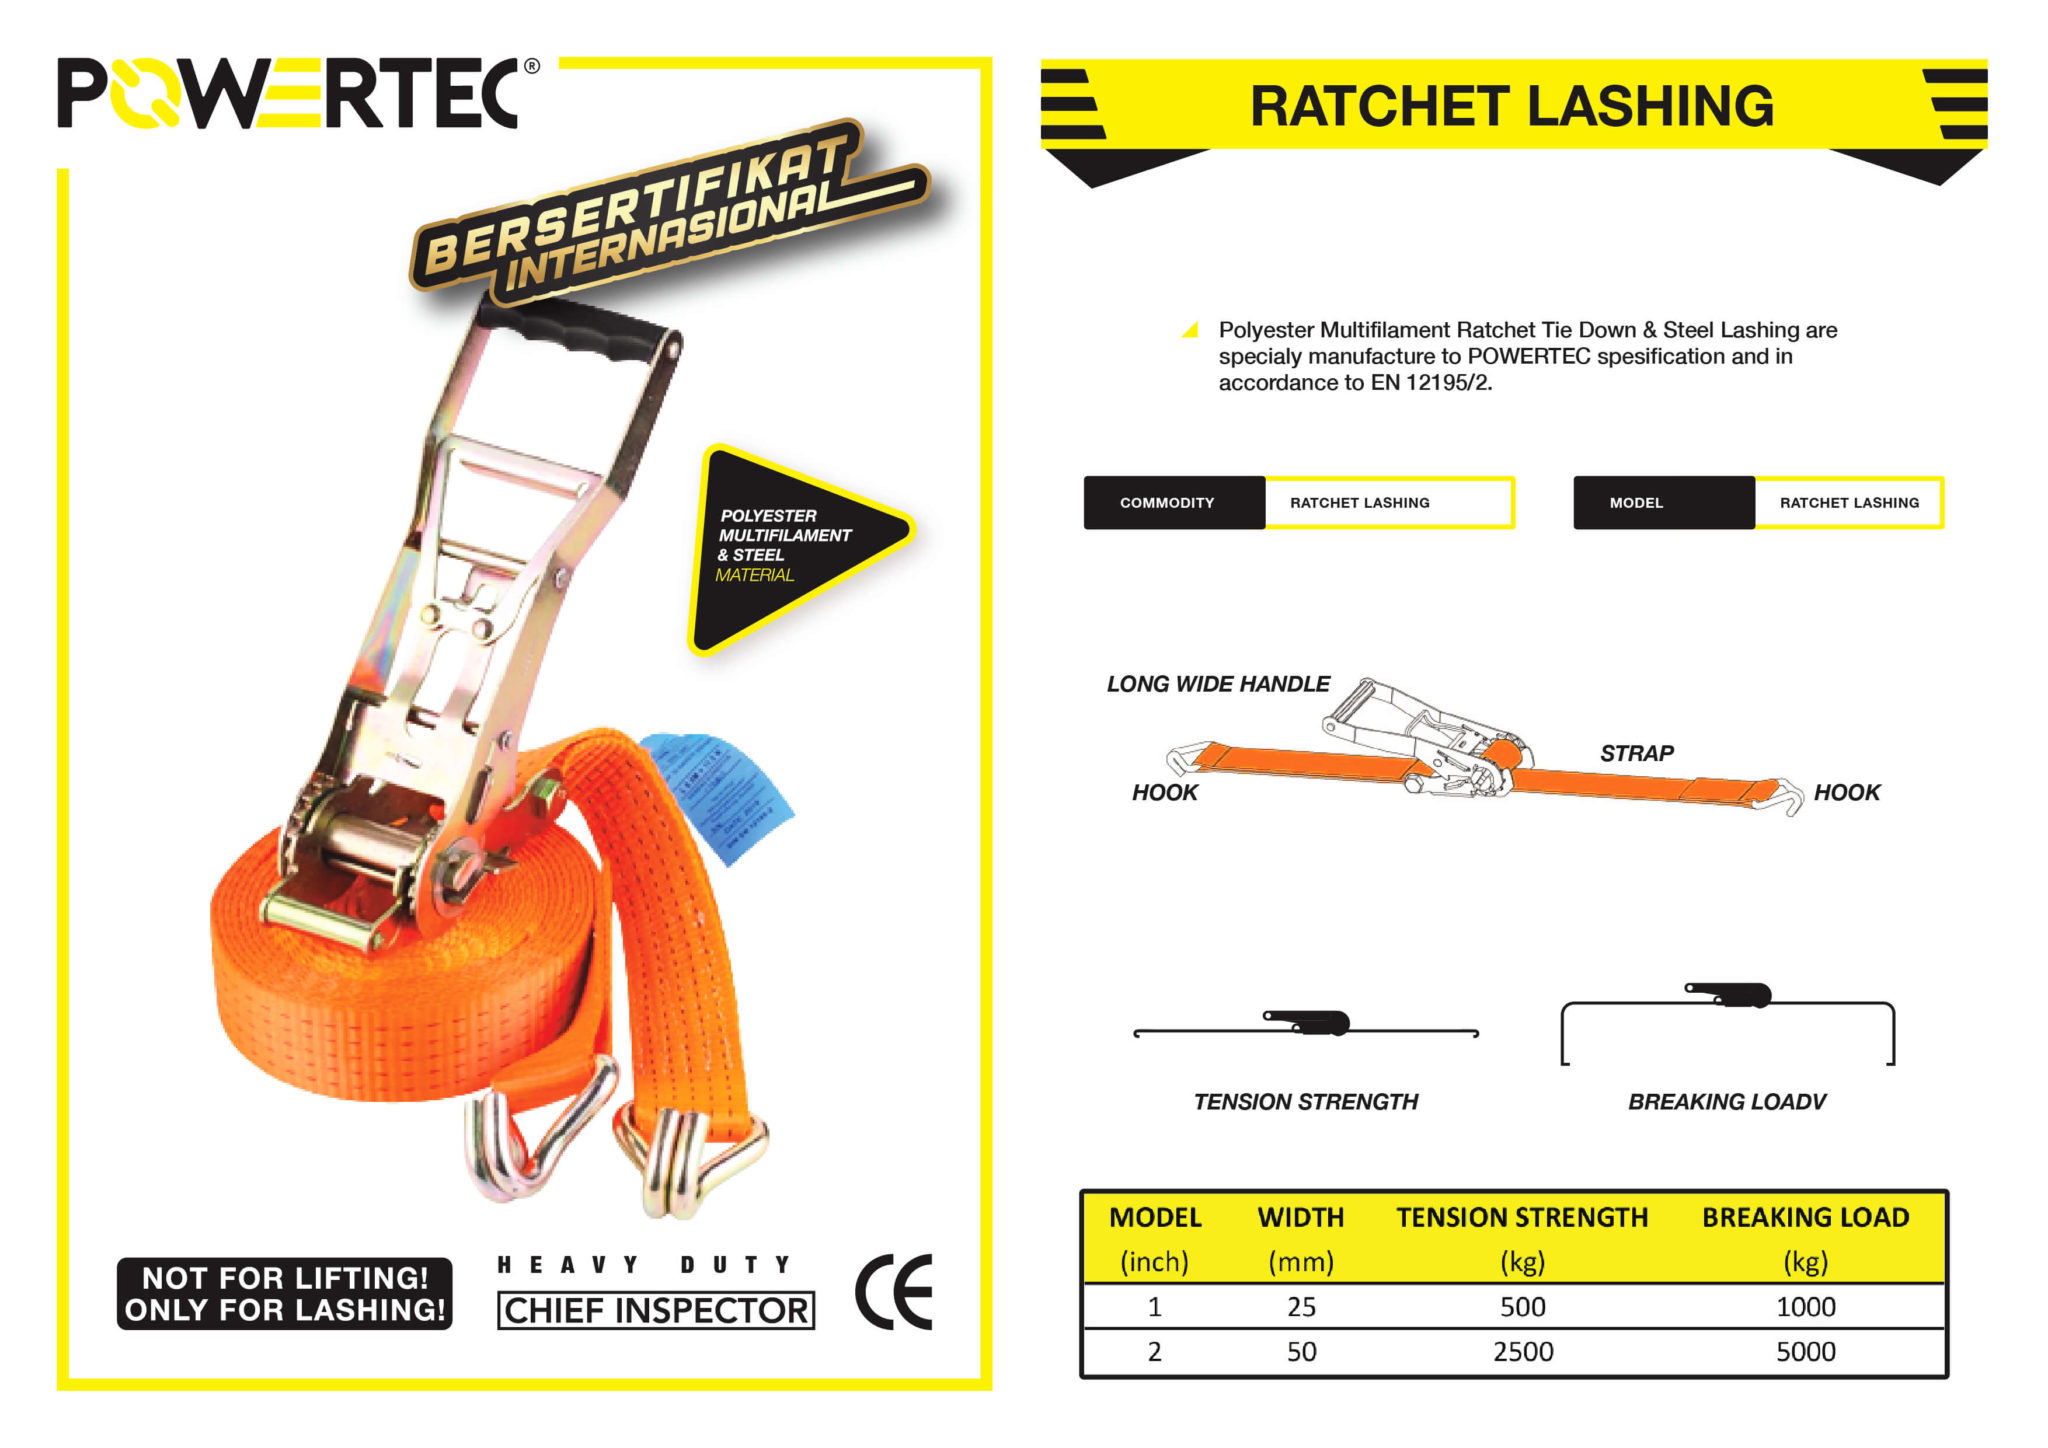 POWERTEC RATCHET LASHING BELT BROCHURE